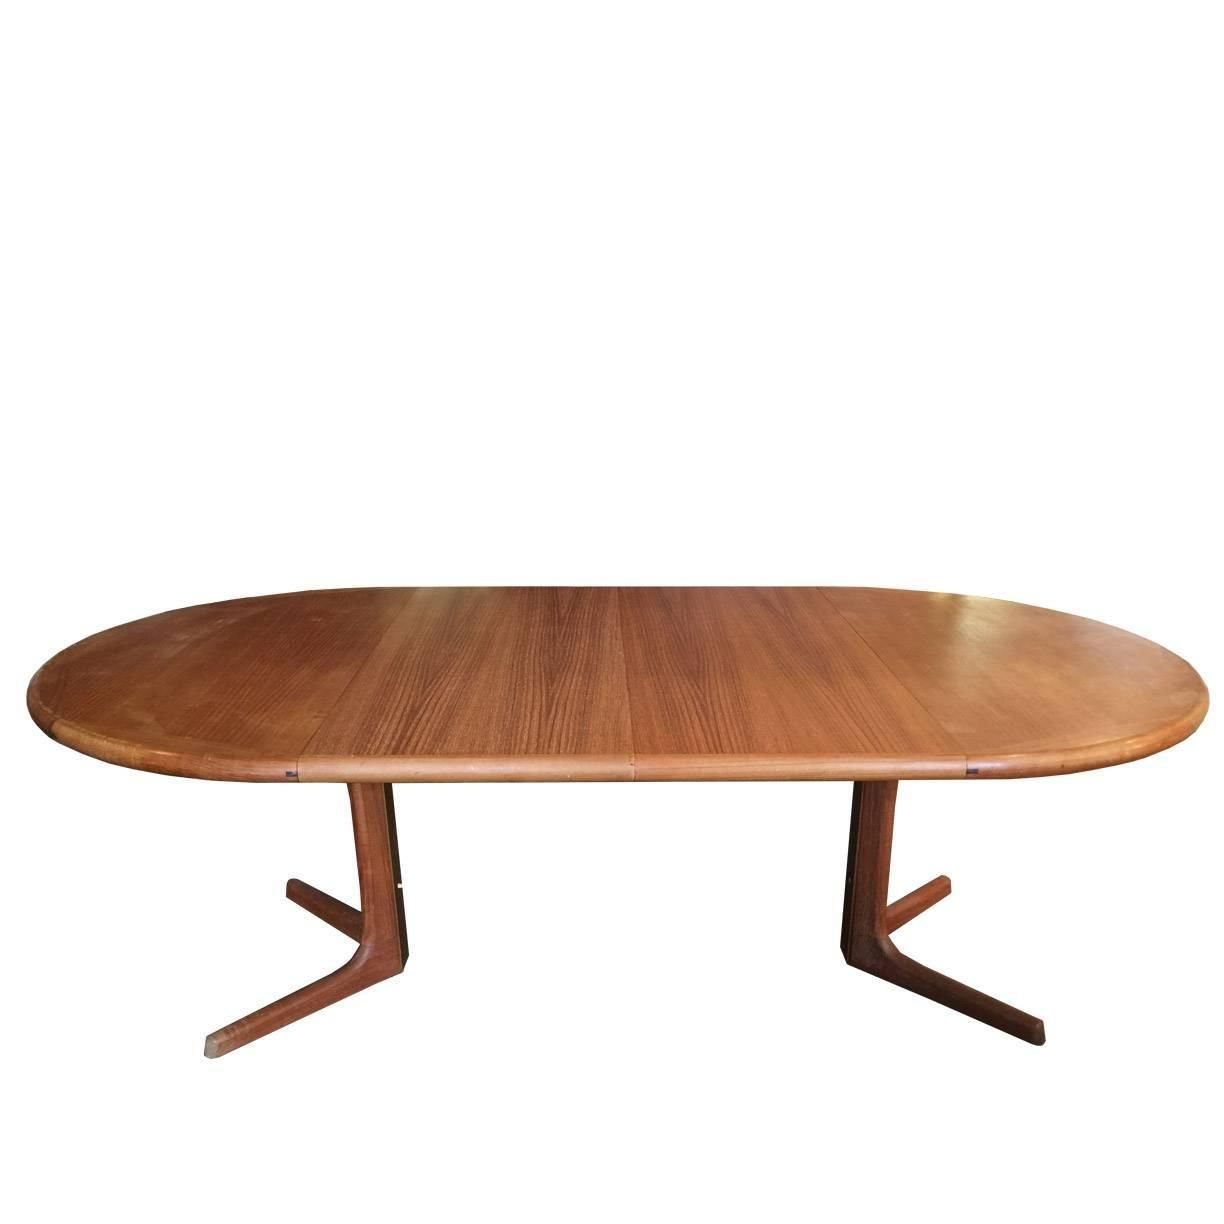 Oval Danish Teak Dining Tabledrylund  From A Unique Unique Scandinavian Teak Dining Room Furniture Decorating Inspiration